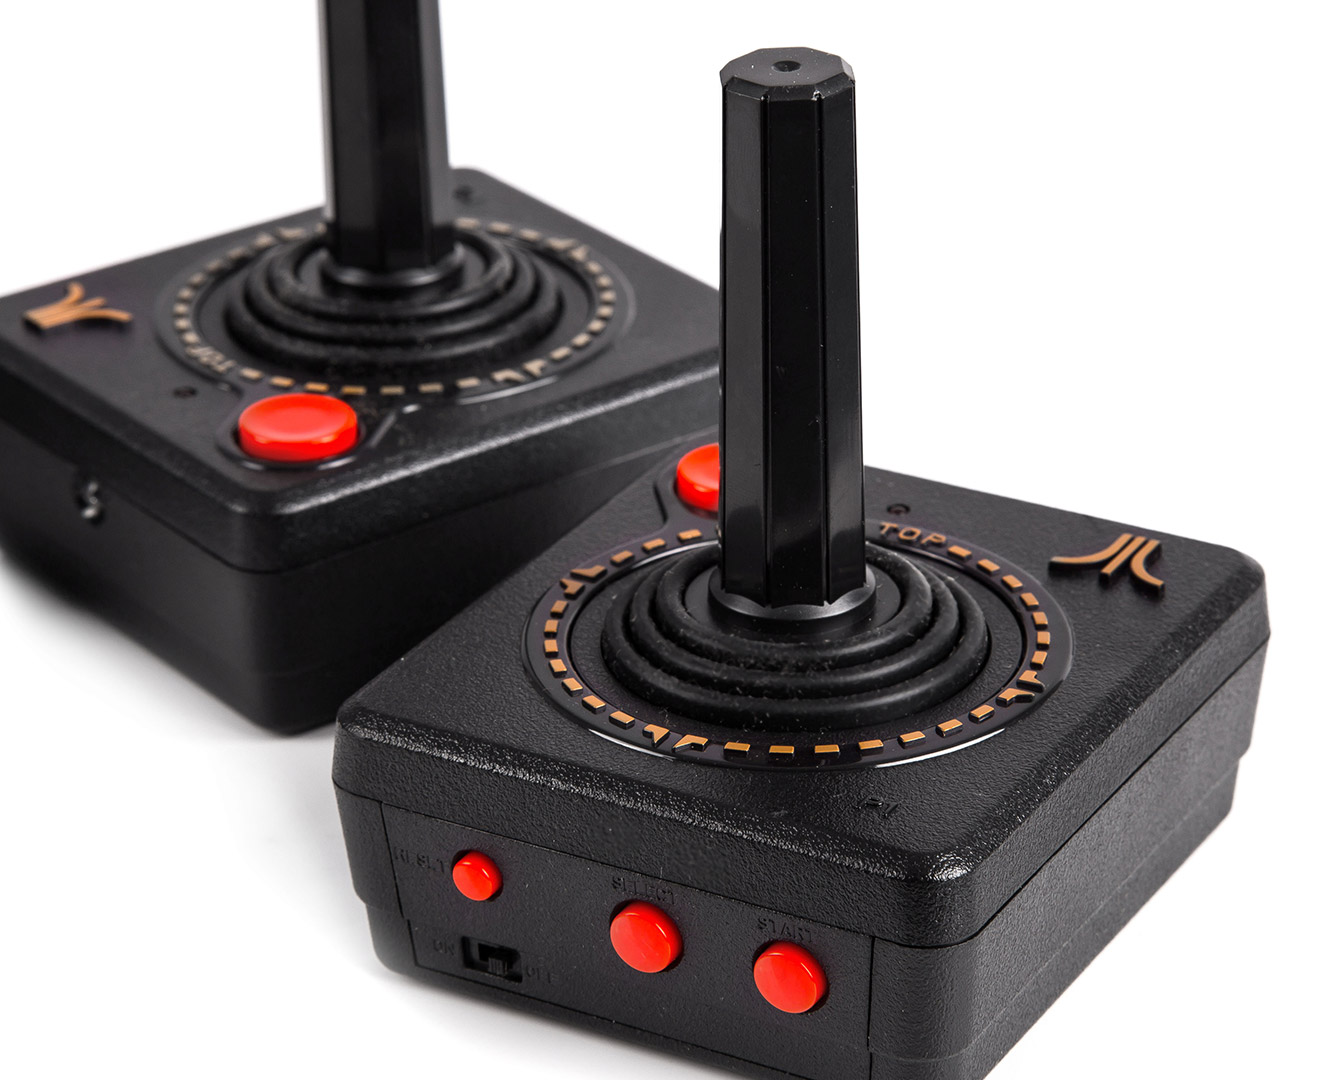 atari flashback 5 classic game console. Black Bedroom Furniture Sets. Home Design Ideas